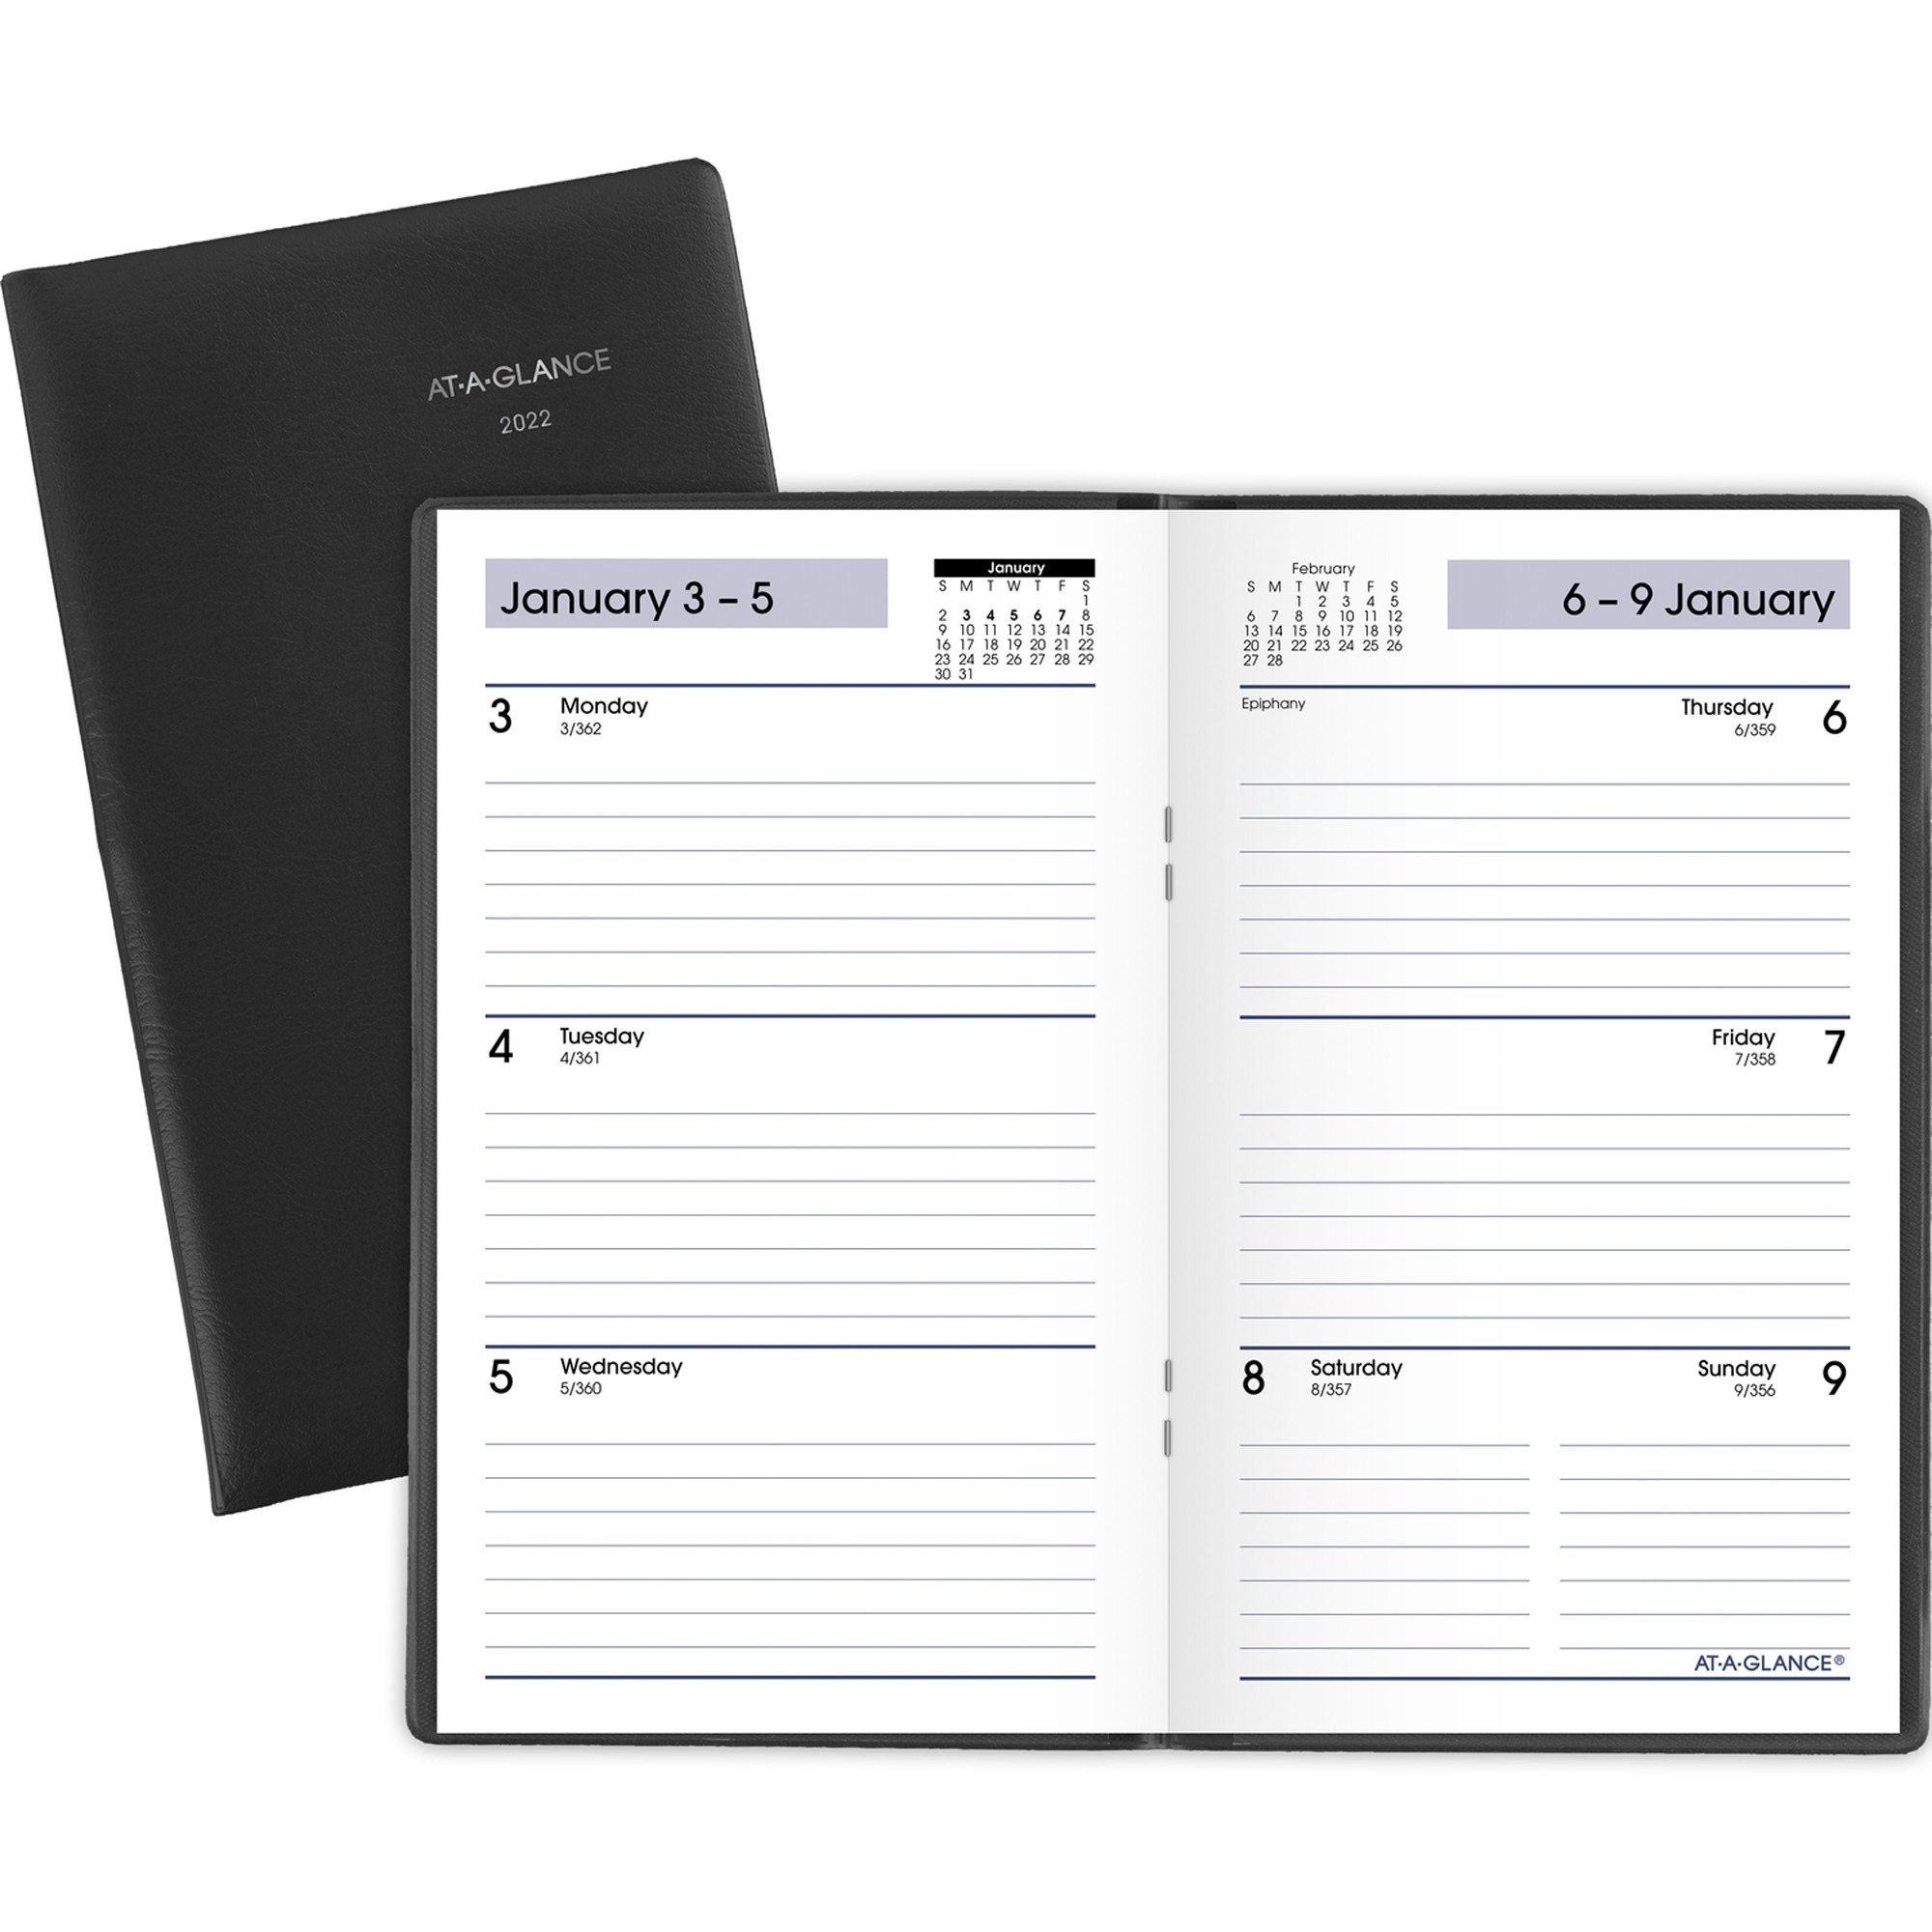 At-A-Glance DayMinder Weekly Pocket Planner - Yes - Weekly - 1 Year - January 2020 till December 2020 - 1 Week Double Page Layout - 3 1/2